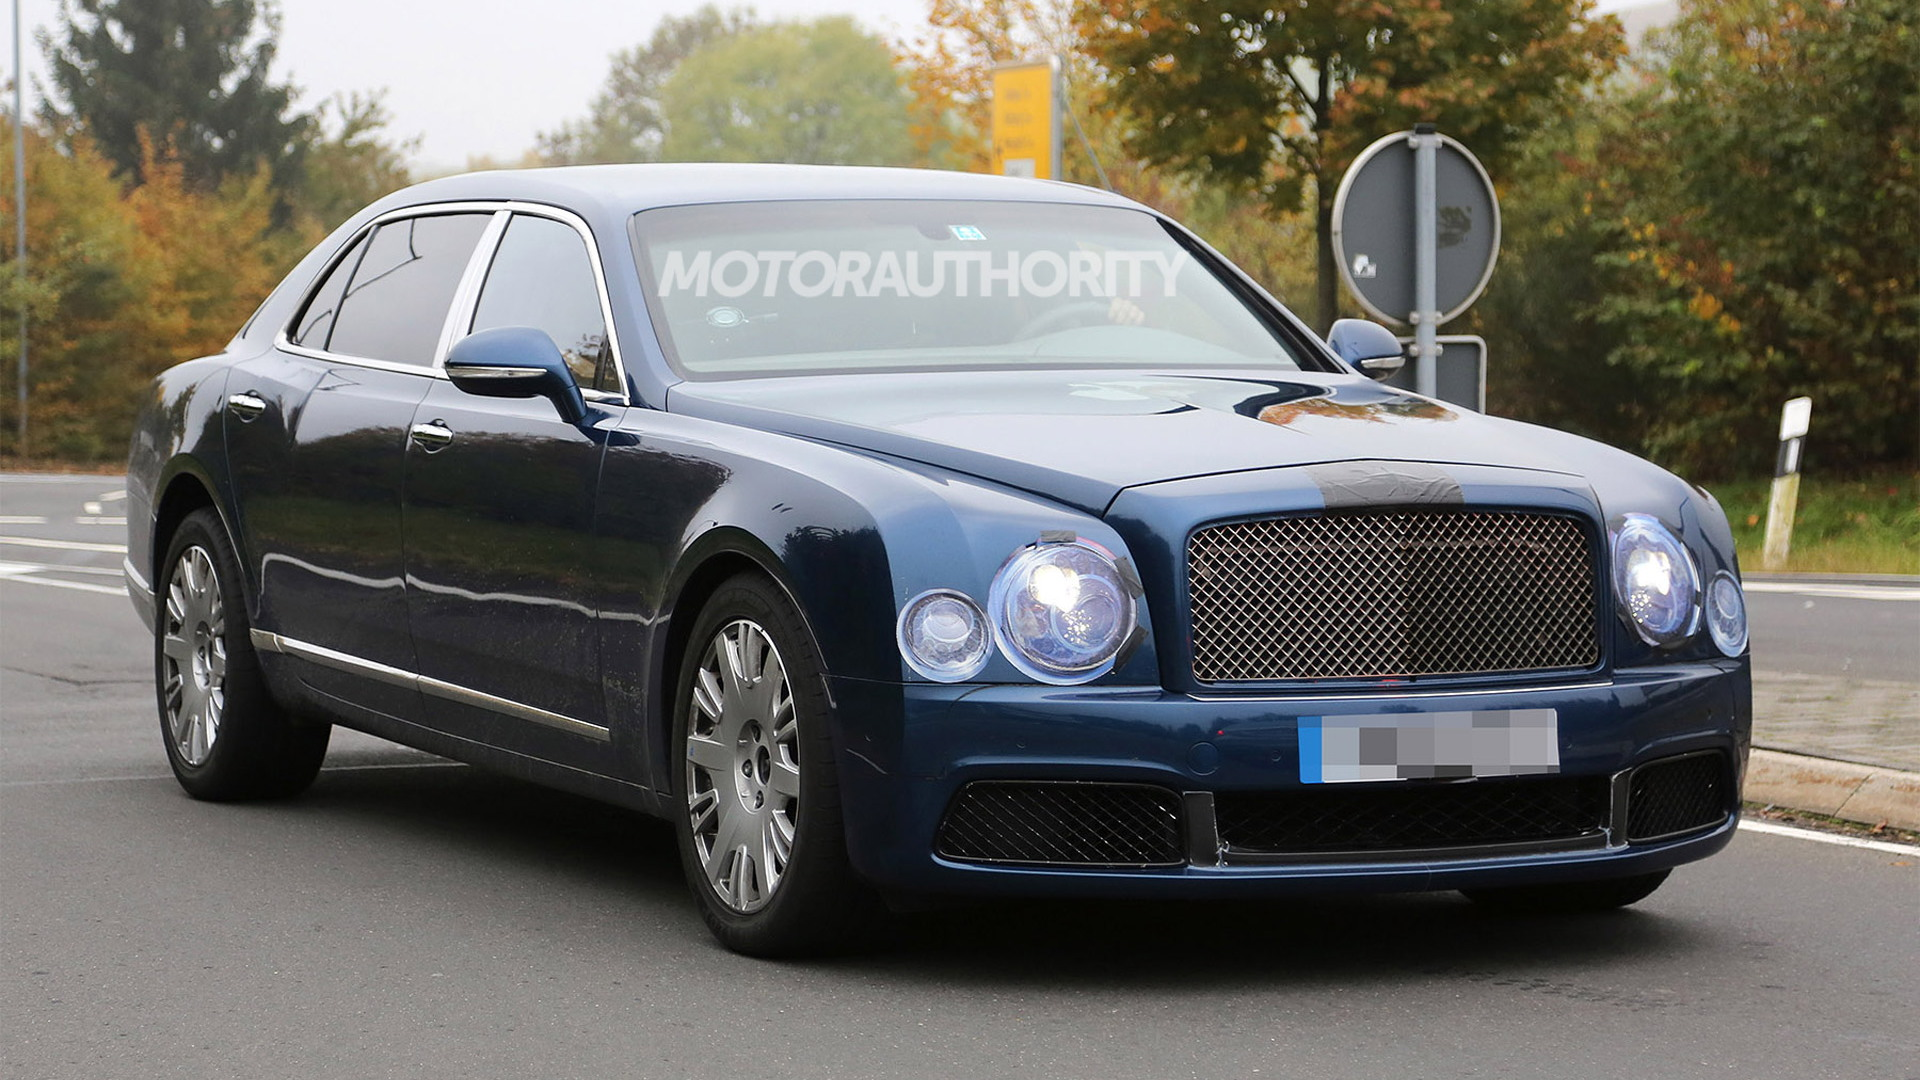 2017 Bentley Mulsanne long-wheelbase spy shots - Image via S. Baldauf/SB-Medien